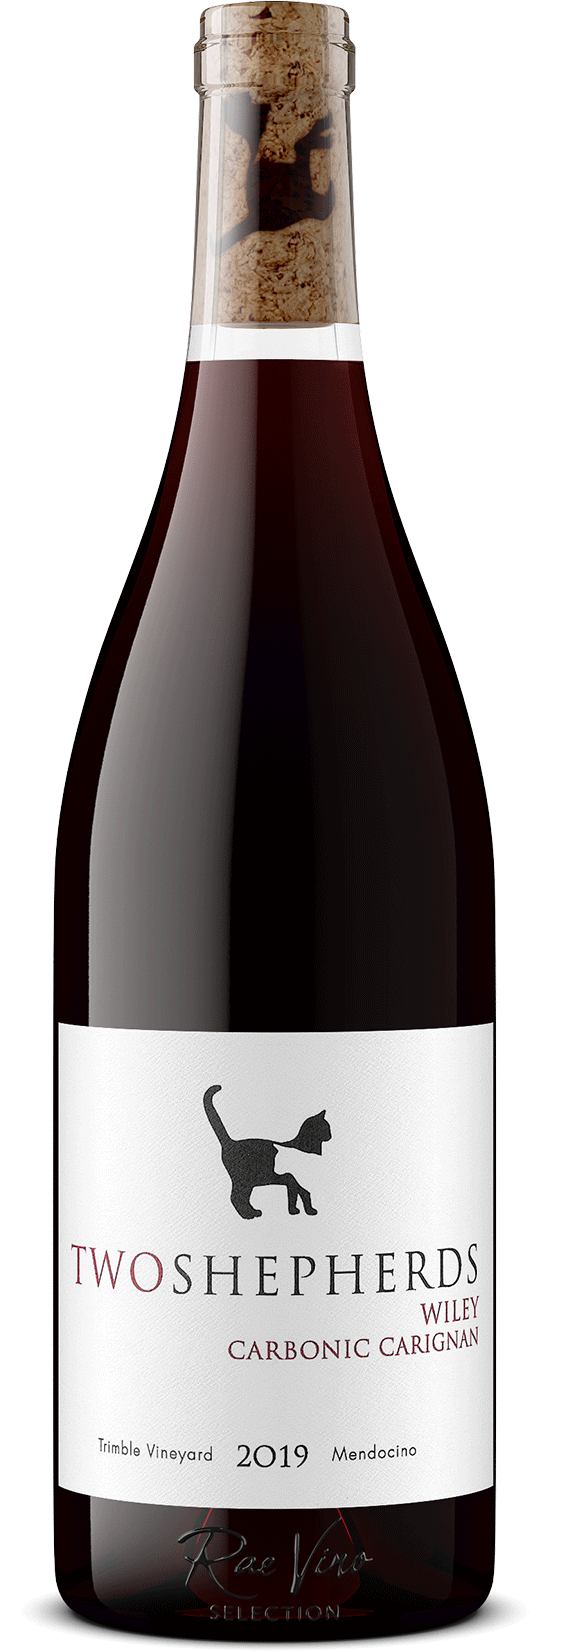 Two Shepherds : 'Wily' : Carignan | 2019